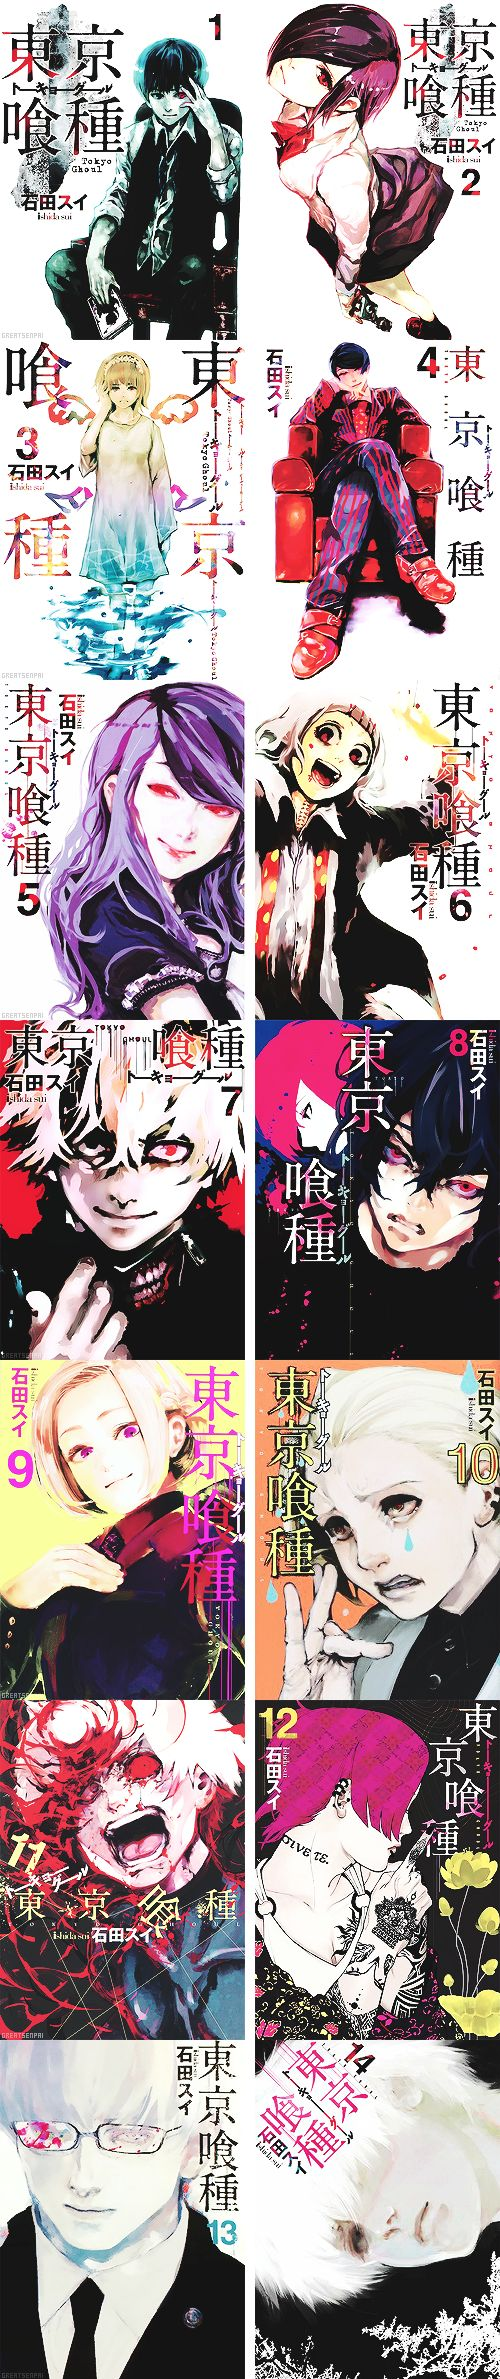 Tokyo Ghoul | Volumes, http://kissmanga.com/Manga/Toukyou-Kushu If anyone wants to read it for free click on the website above.